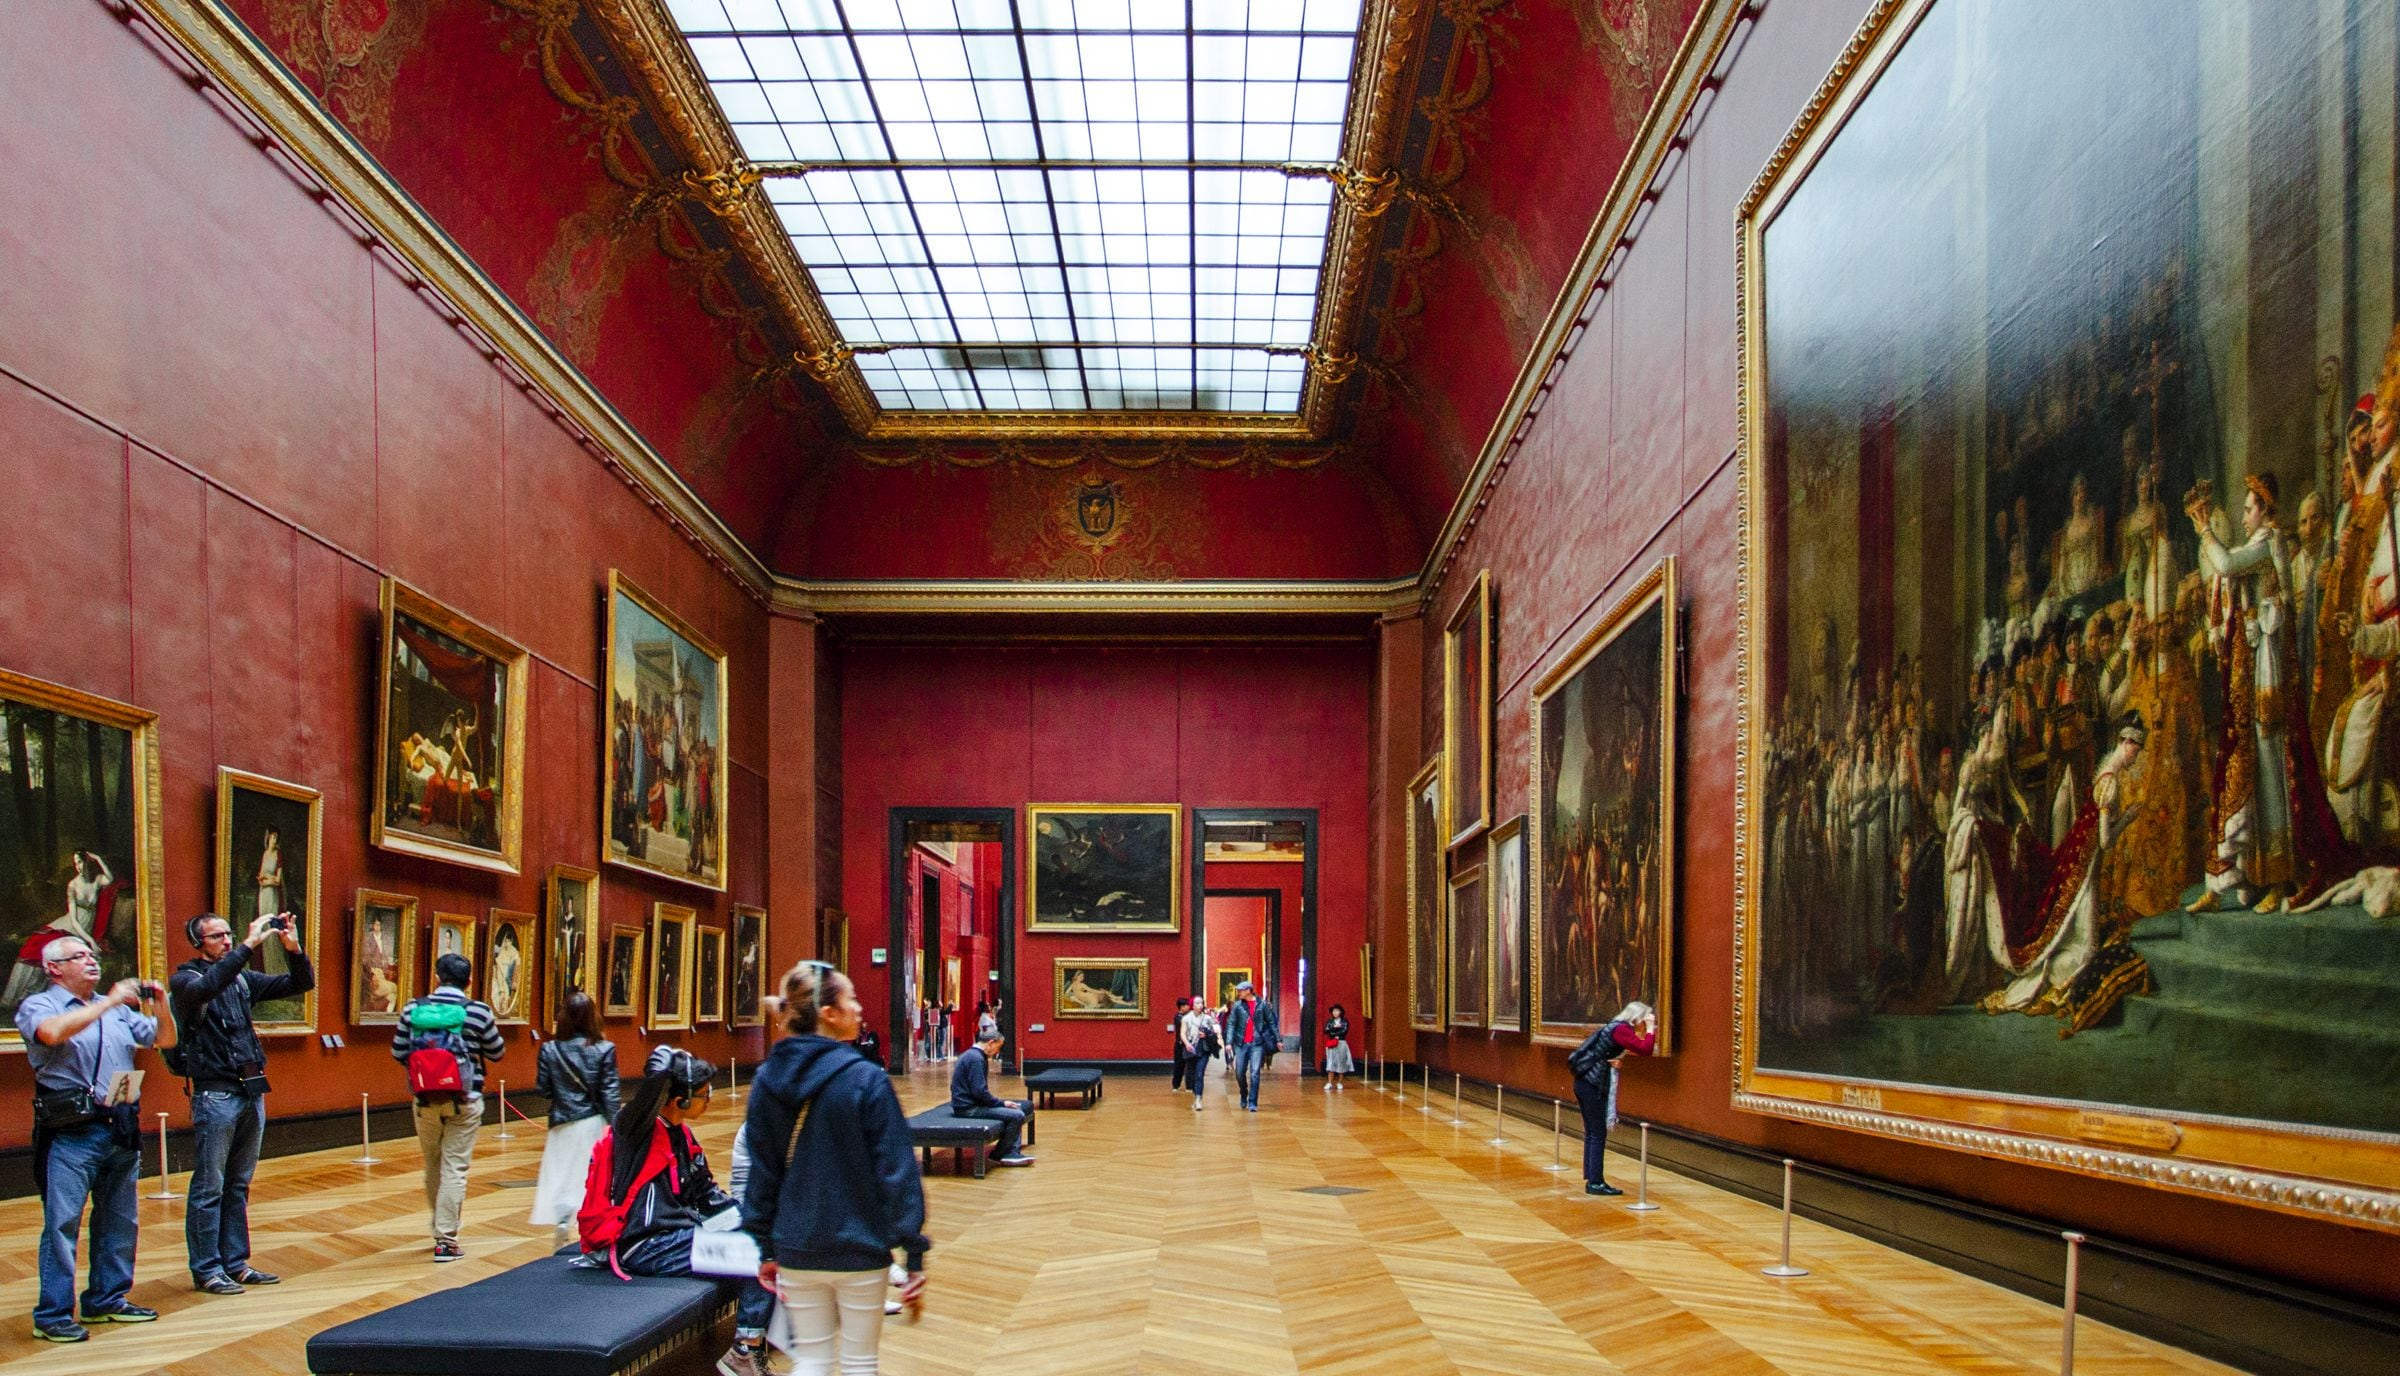 A Galery at The Louvre Museum